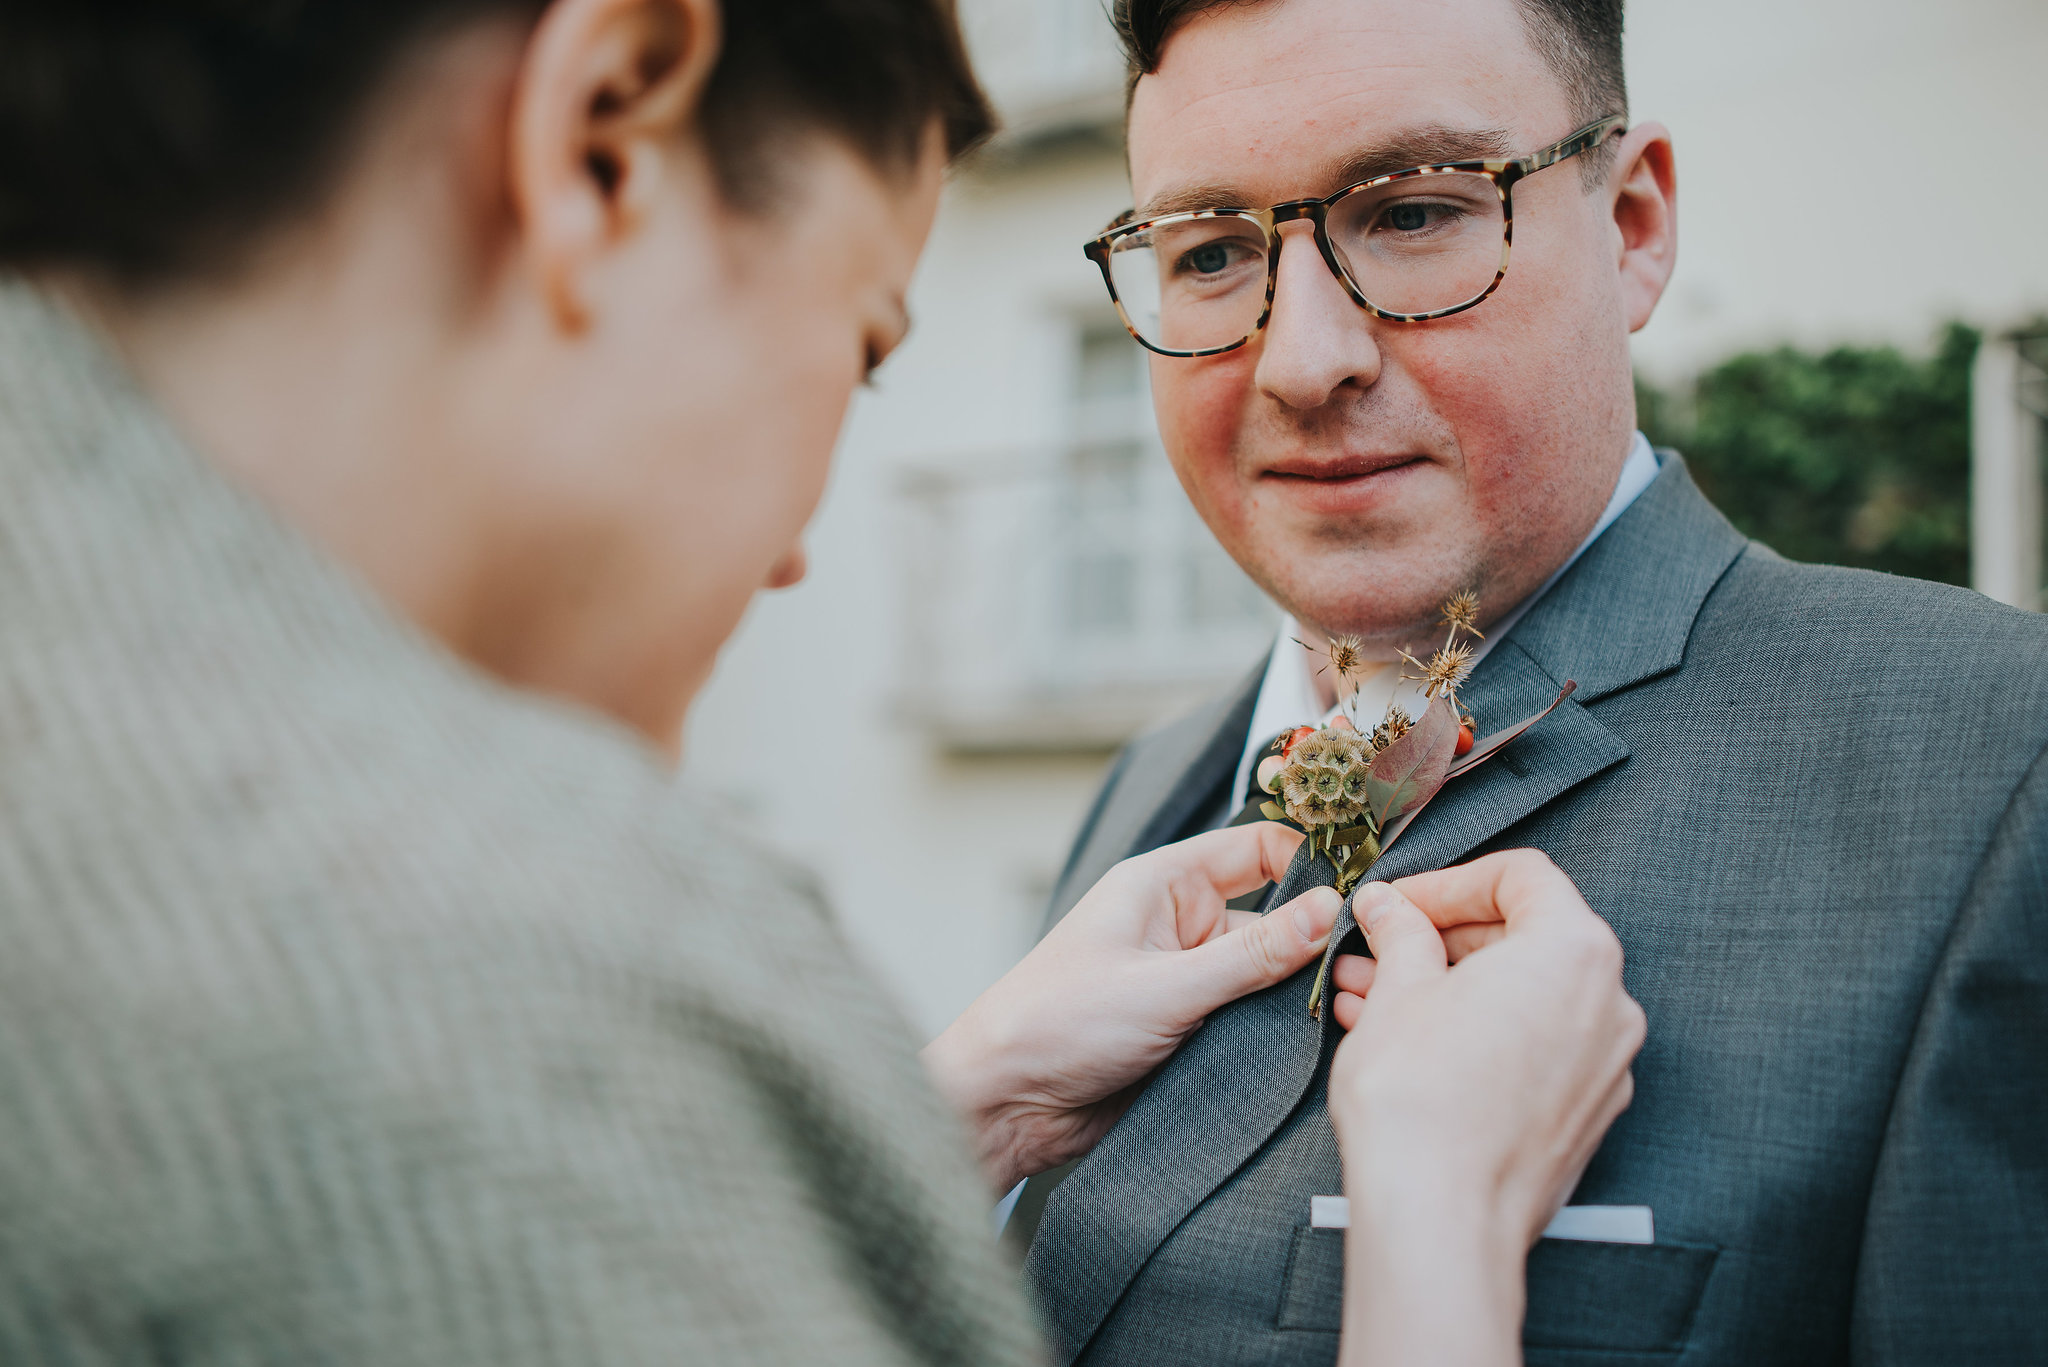 Bride fixing her groom's buttonhole on their wedding day